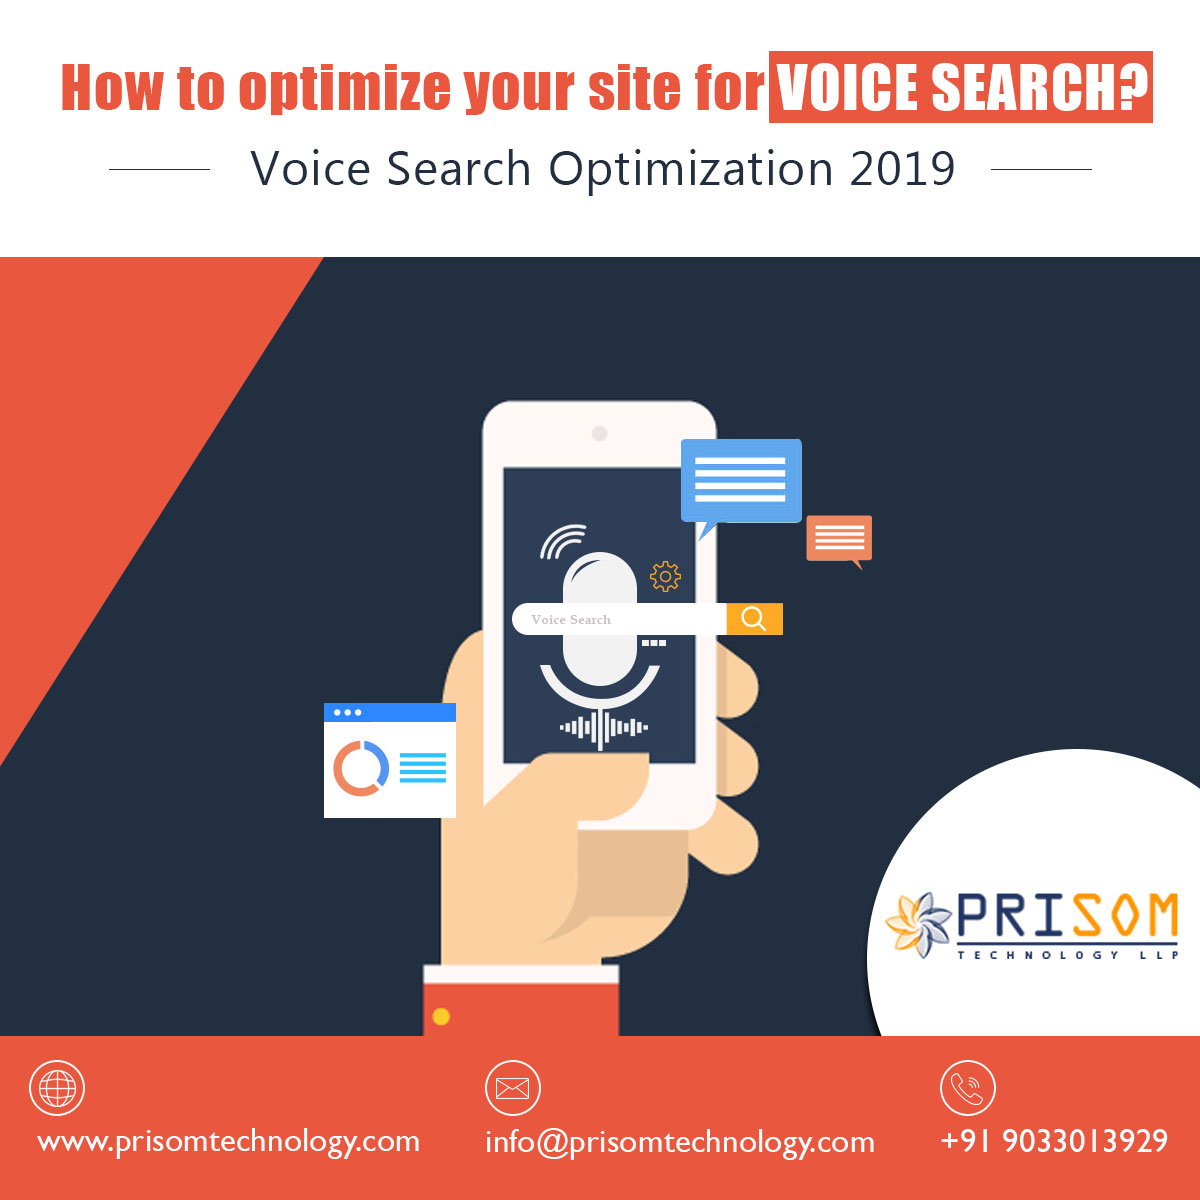 How to optimize your site for Voice Search? - Voice Search Optimization 2019